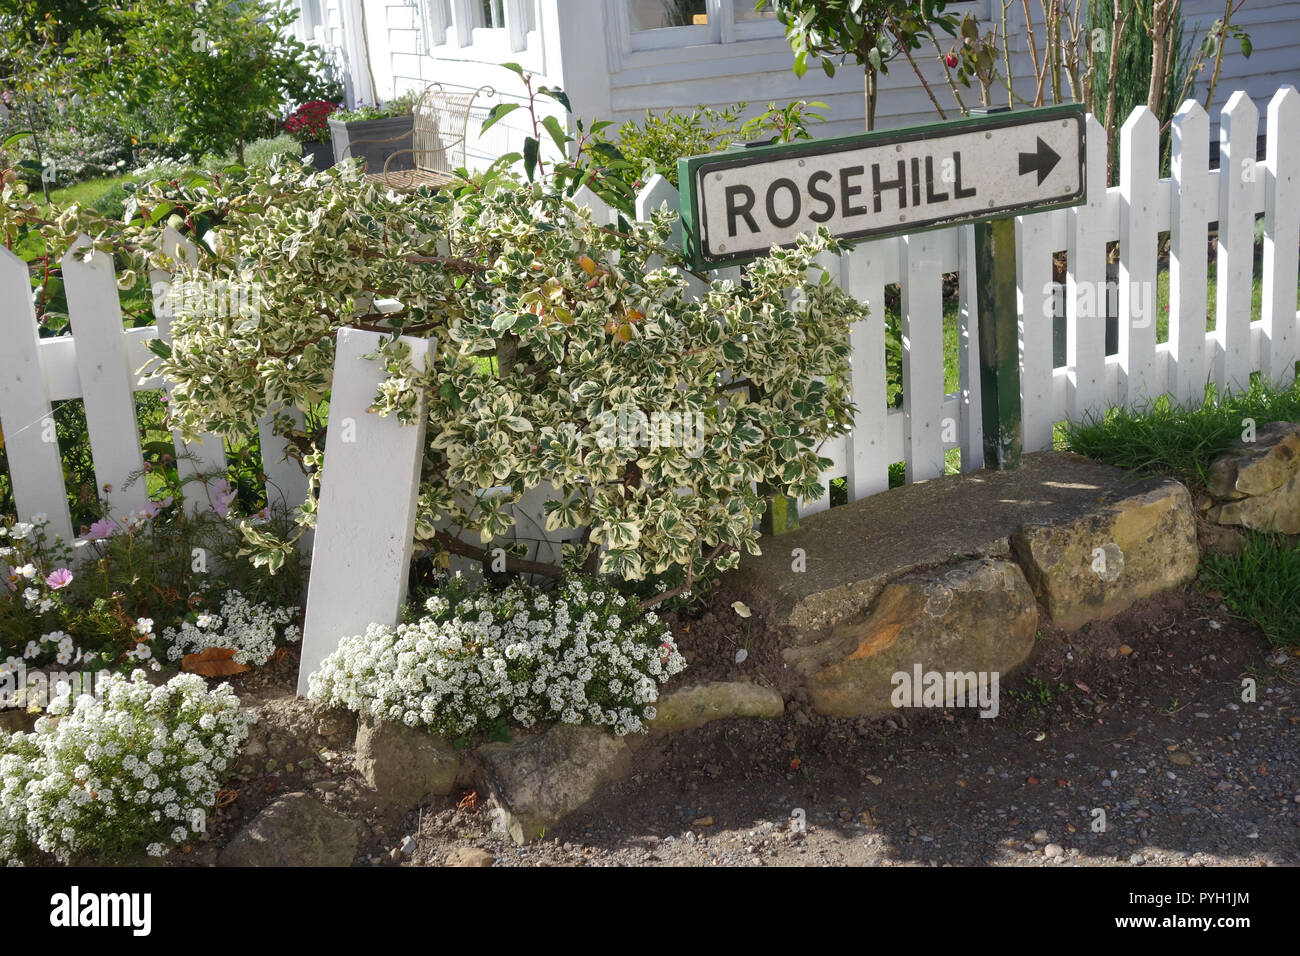 sign to Rosehill cottage, Ticehurst, East Sussex, Unmited Kingdom - Stock Image